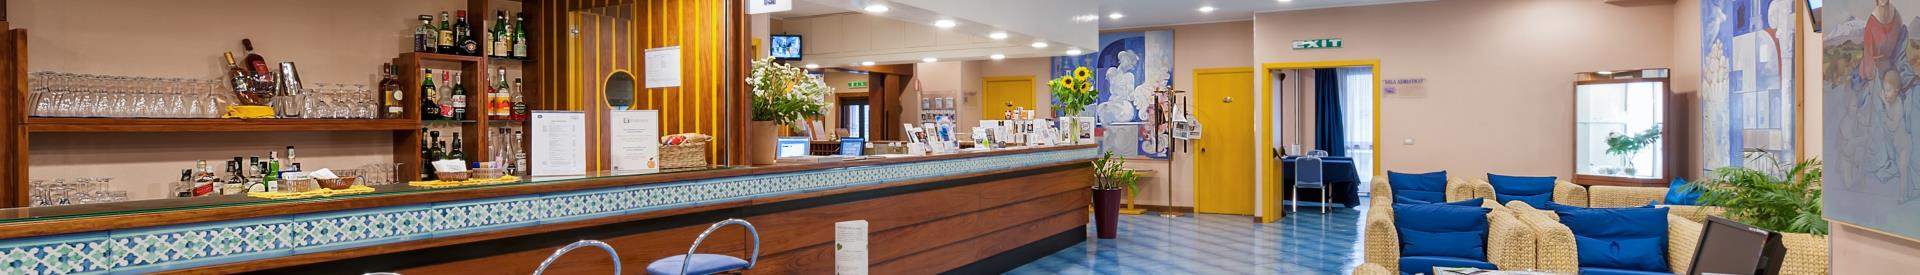 Pictures of Best Western Hotel Mediterraneo Catania